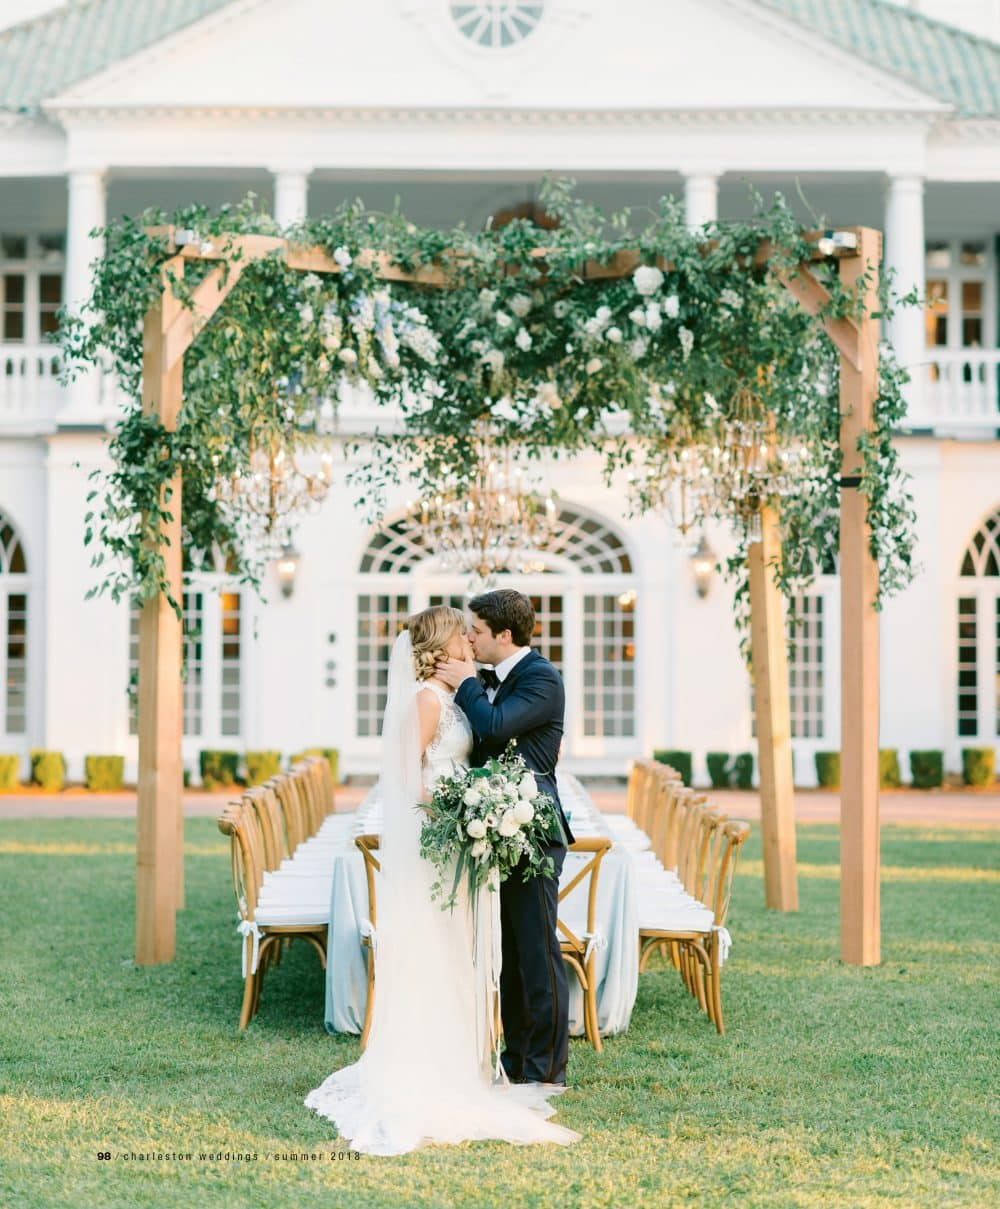 Charleston Wedding Venues: Charleston Wedding Venues And Event Venues